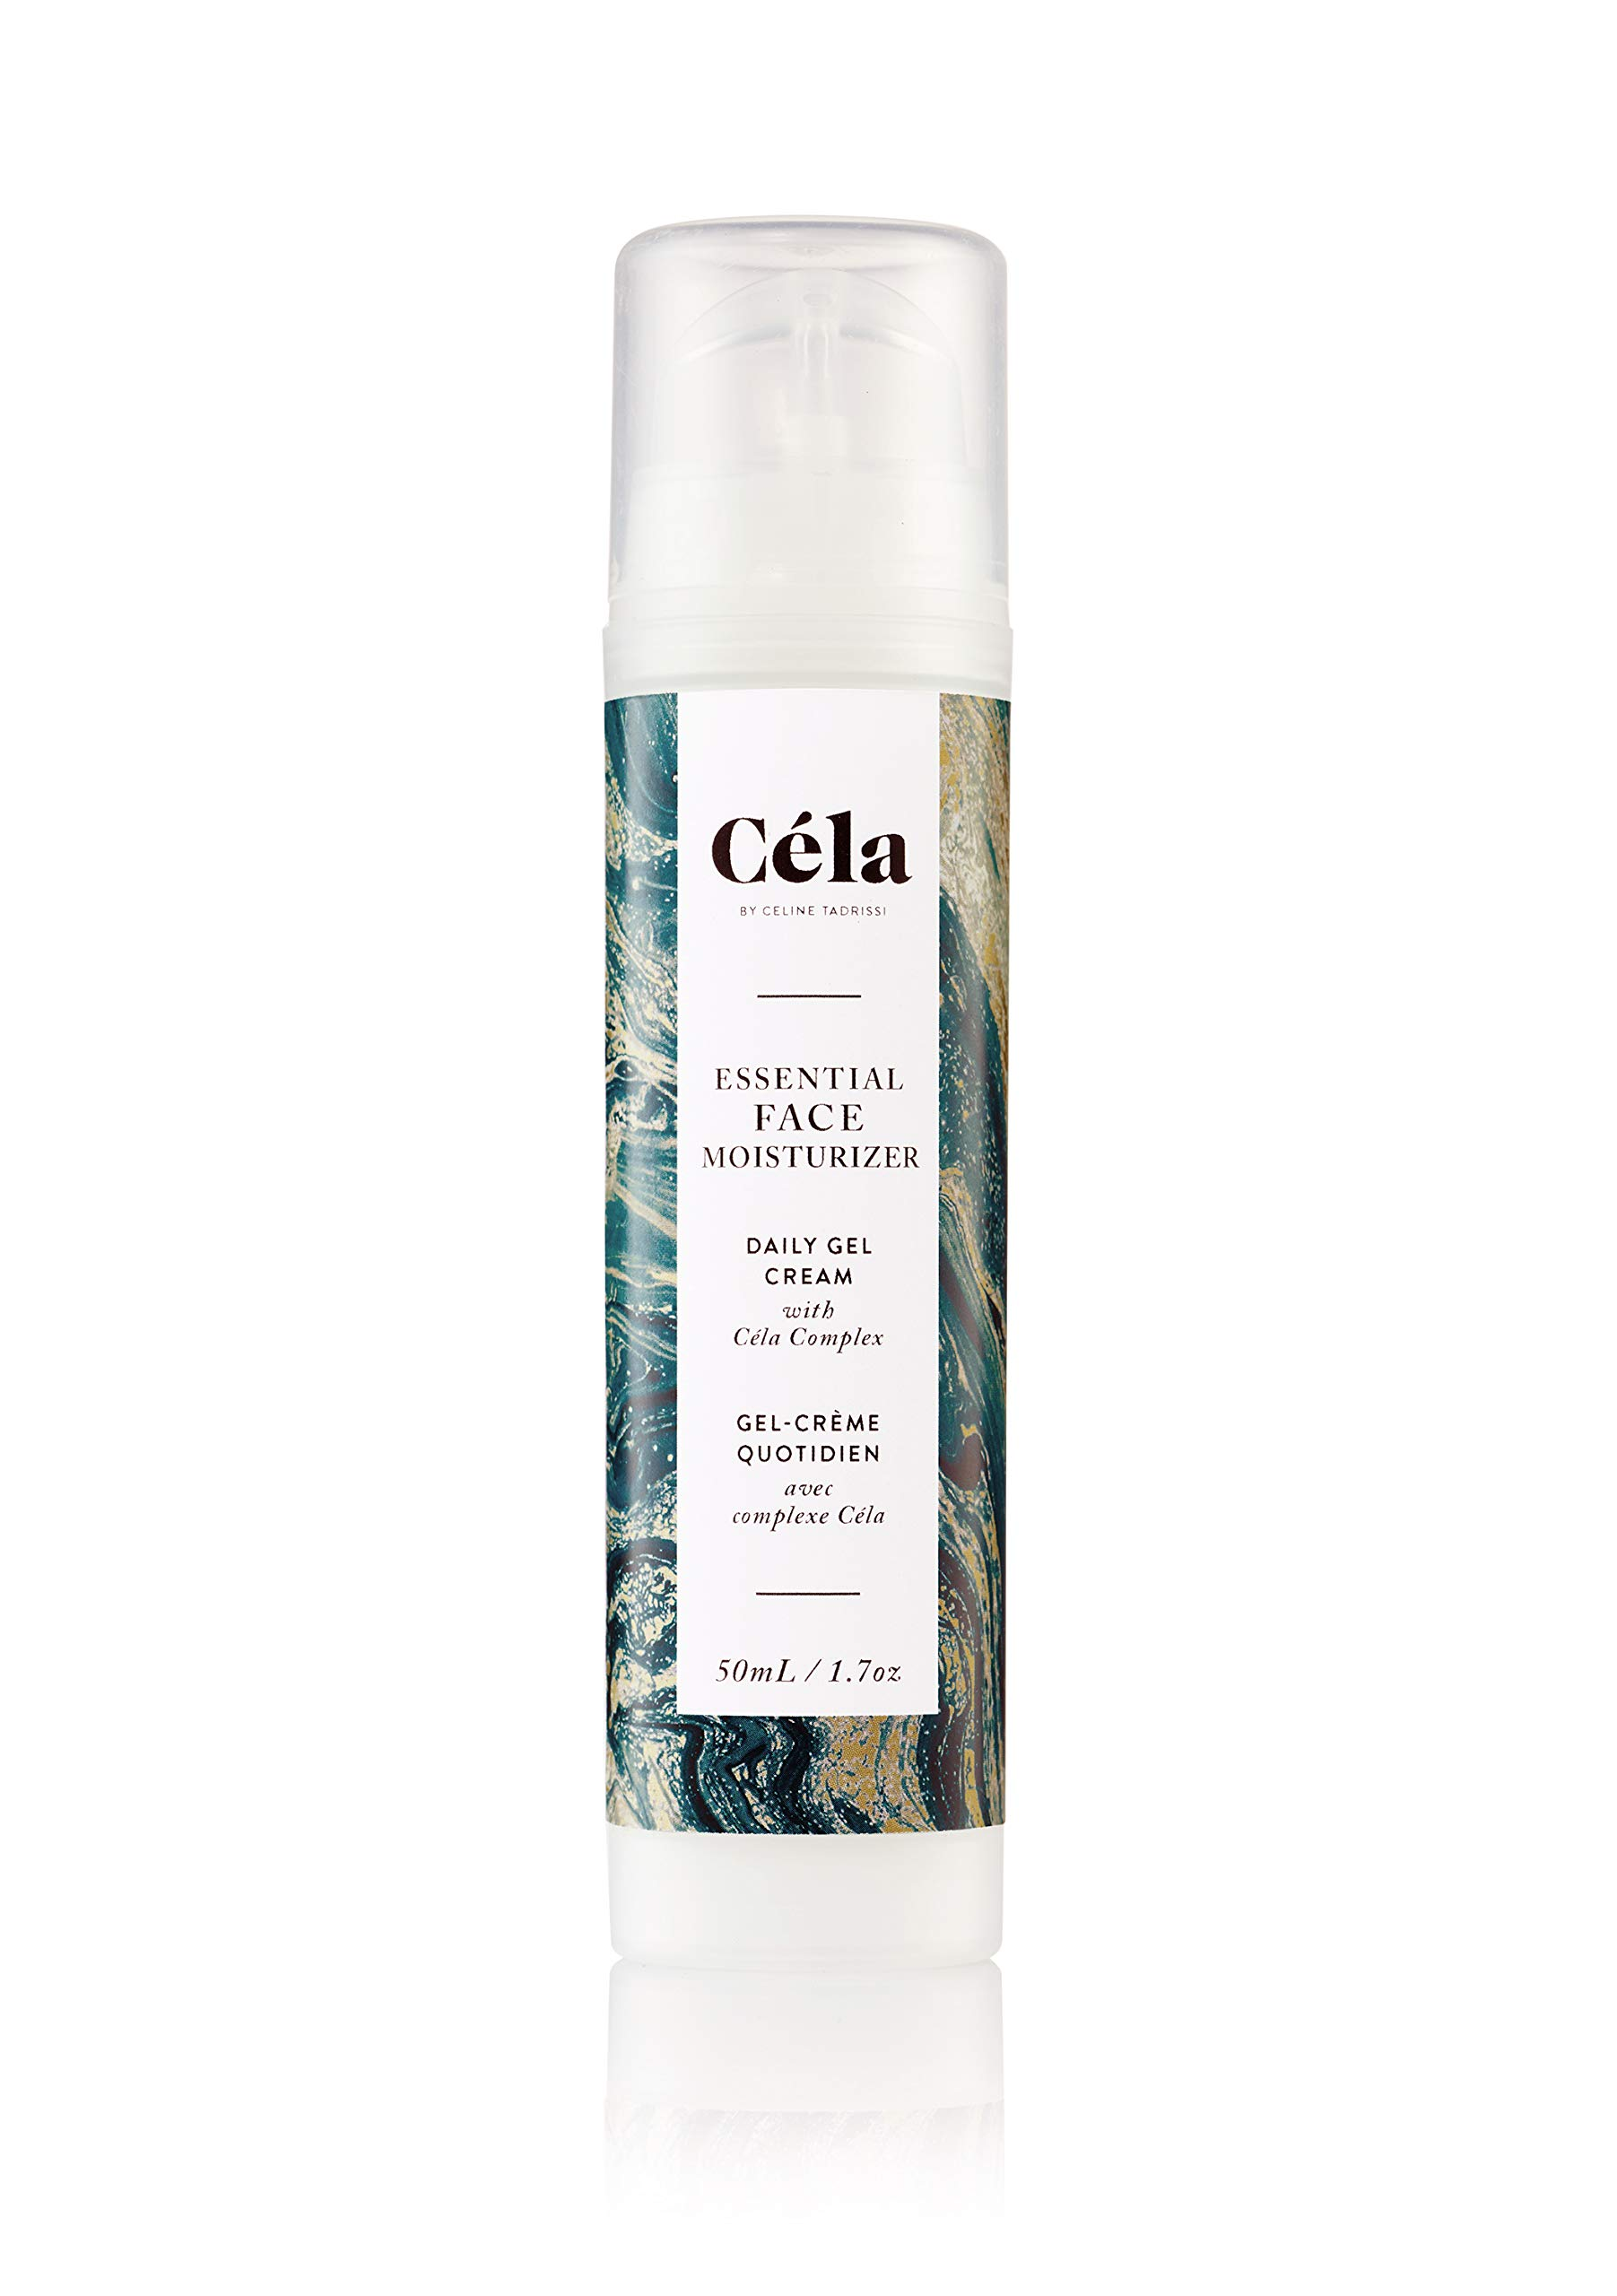 Céla Essential Face Moisturizer Daily Gel Cream, Day/Night Skin Care (50mL) by Céla